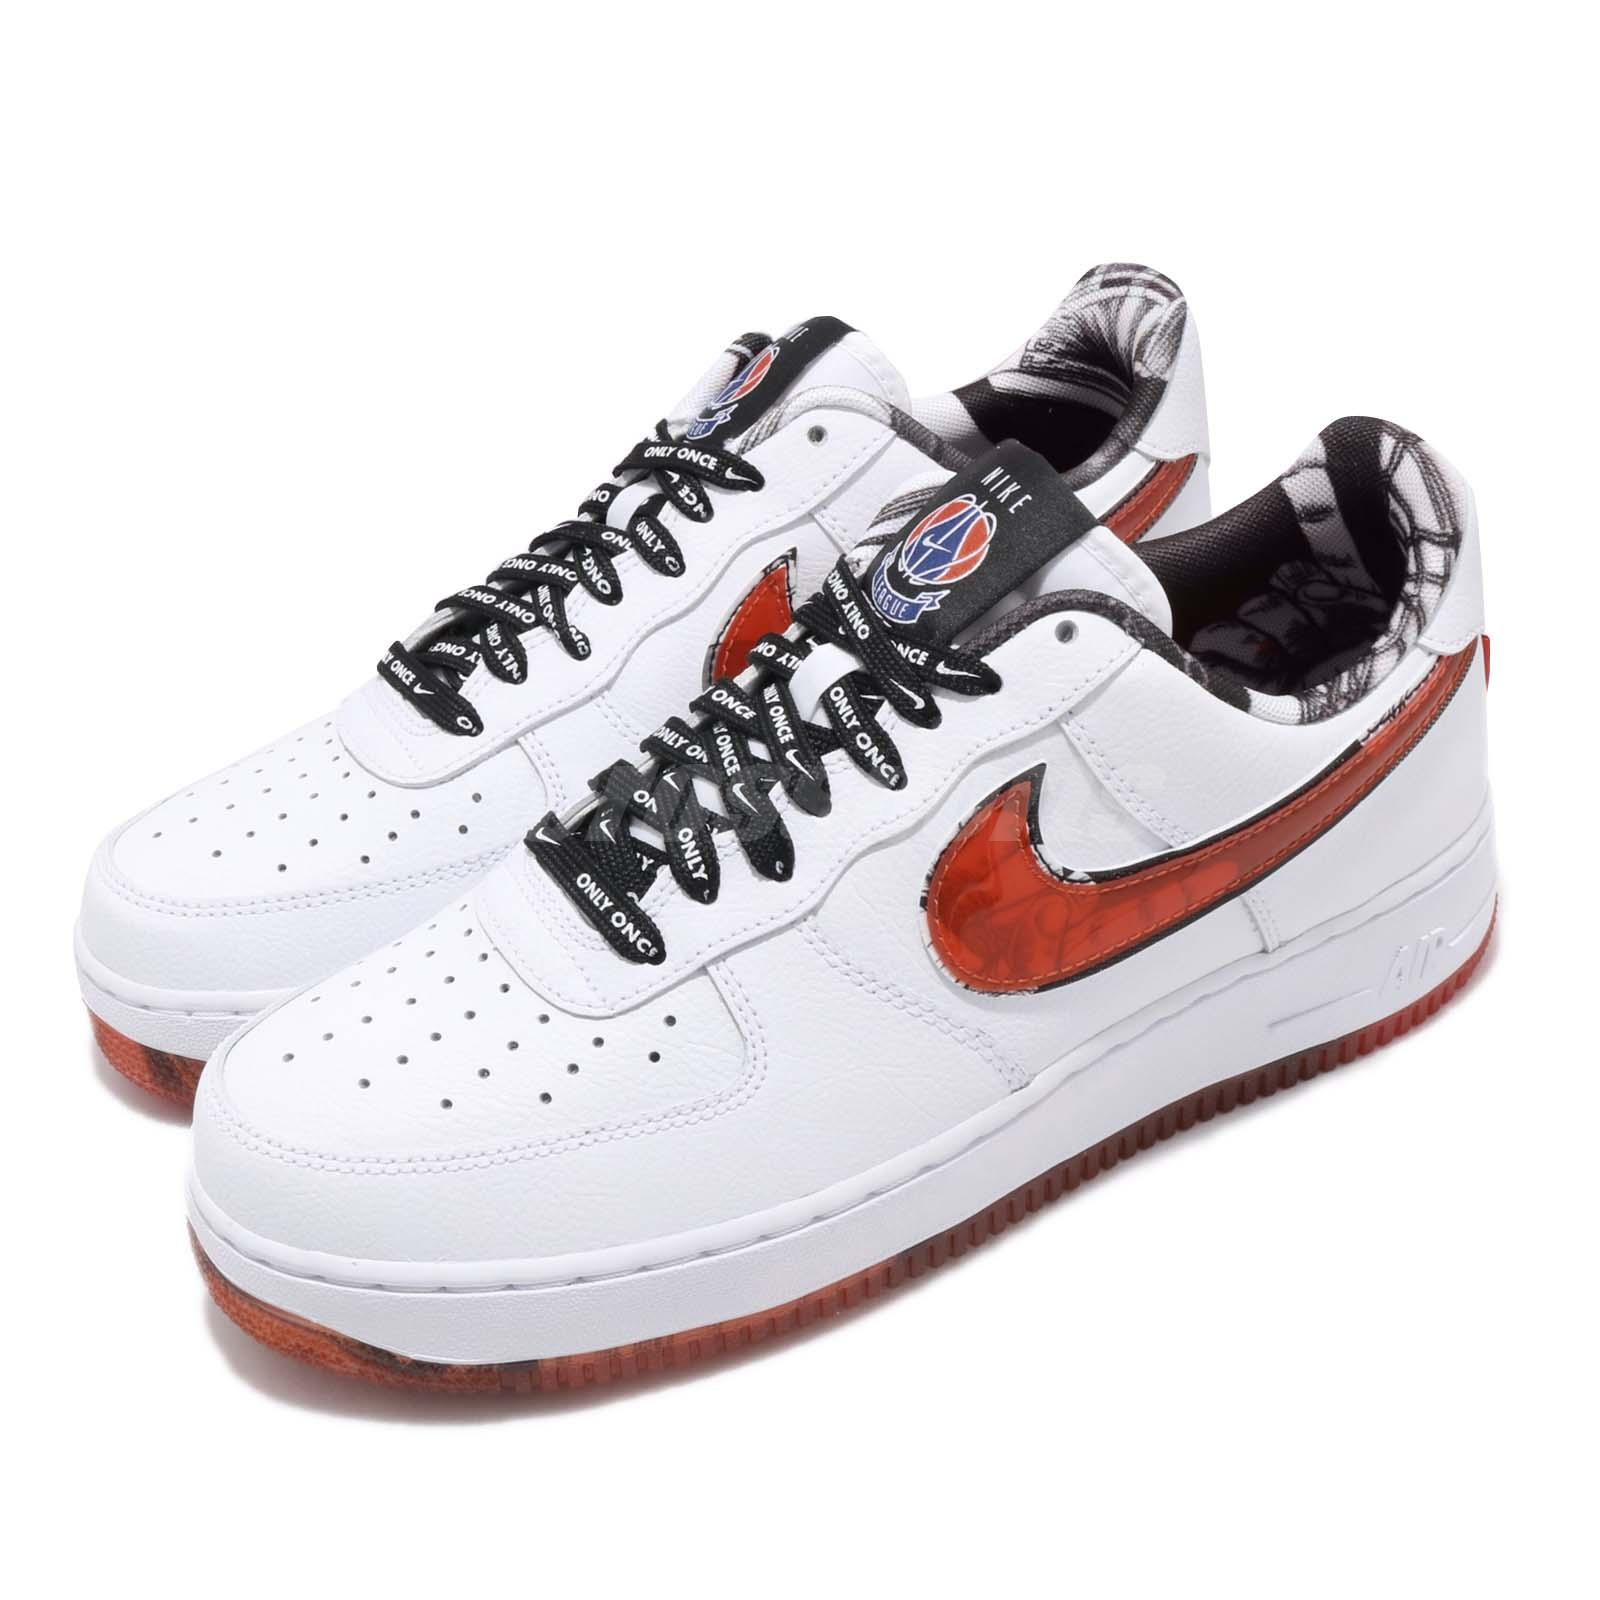 huge selection of a8f92 a1a6f Details about Nike Air Force 1 07 LV8 AF1 Only Once White Red Men Shoes  Sneakers CJ2826-178